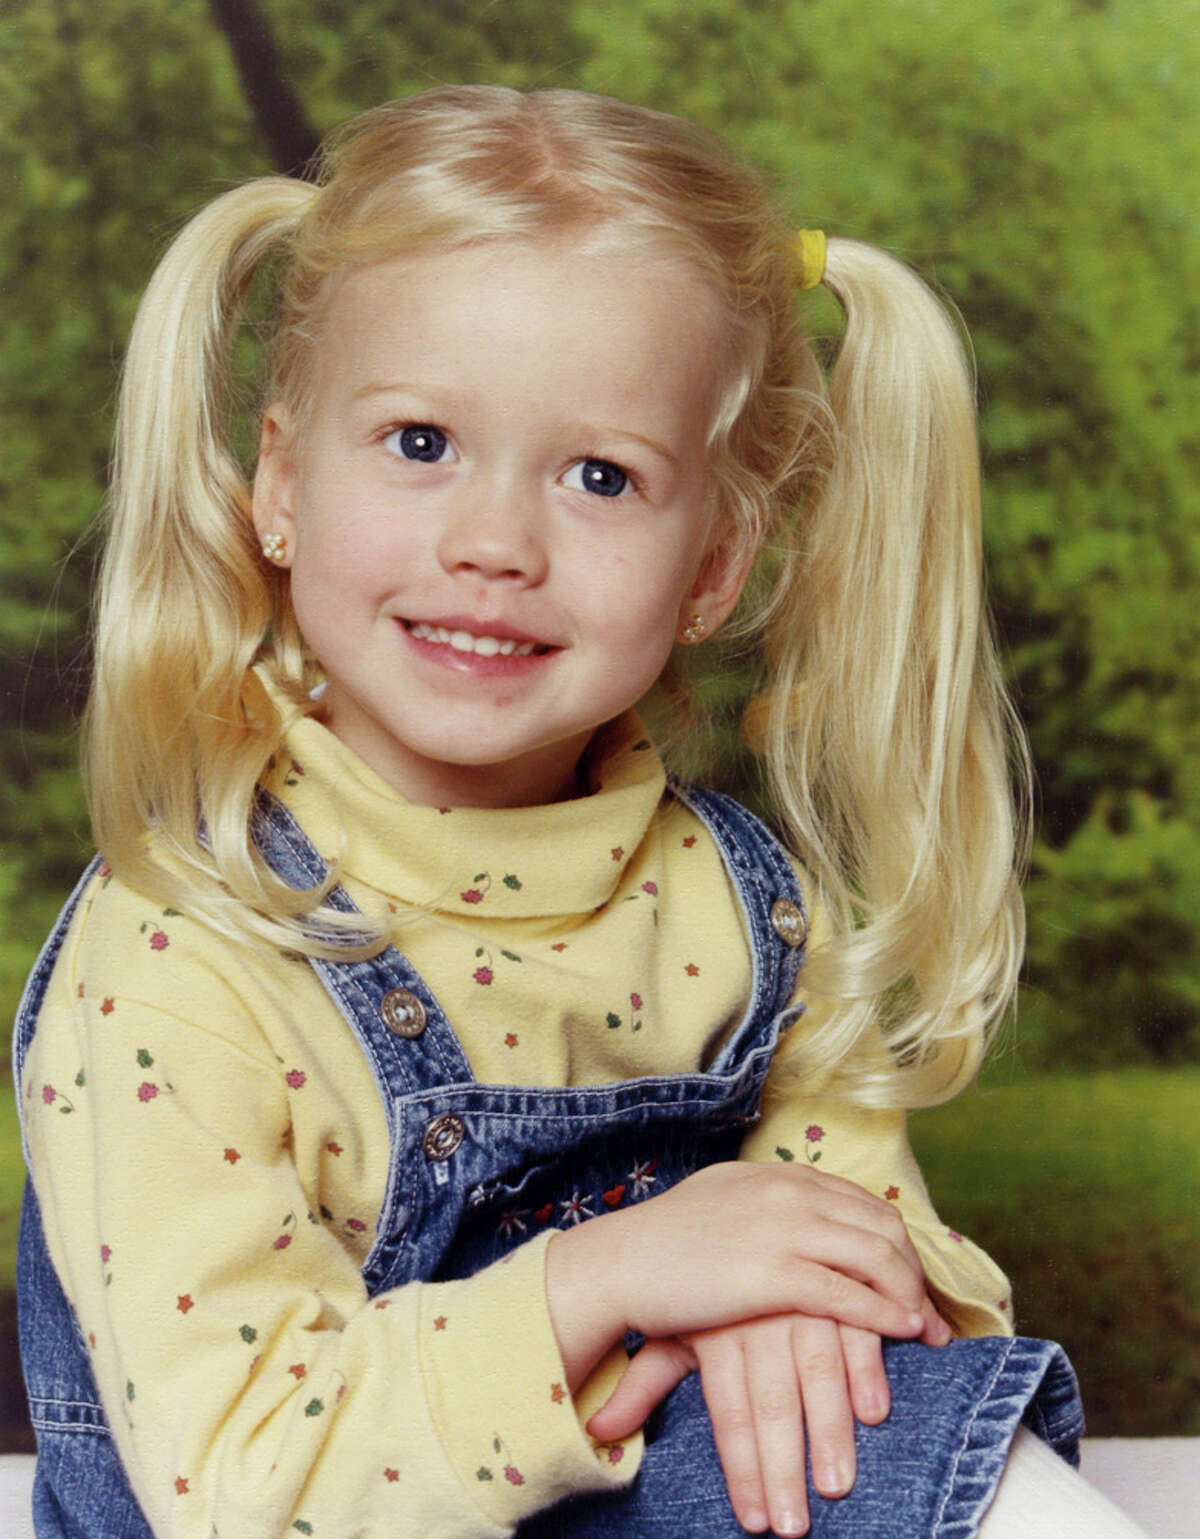 Sabrina Allen was just 4 years old when she was abducted by her mother in 2002. The woman fled from Austin to Mexico, where they lived for 12 years. Sabrina was rescued in late October 2014 and flown to the U.S.